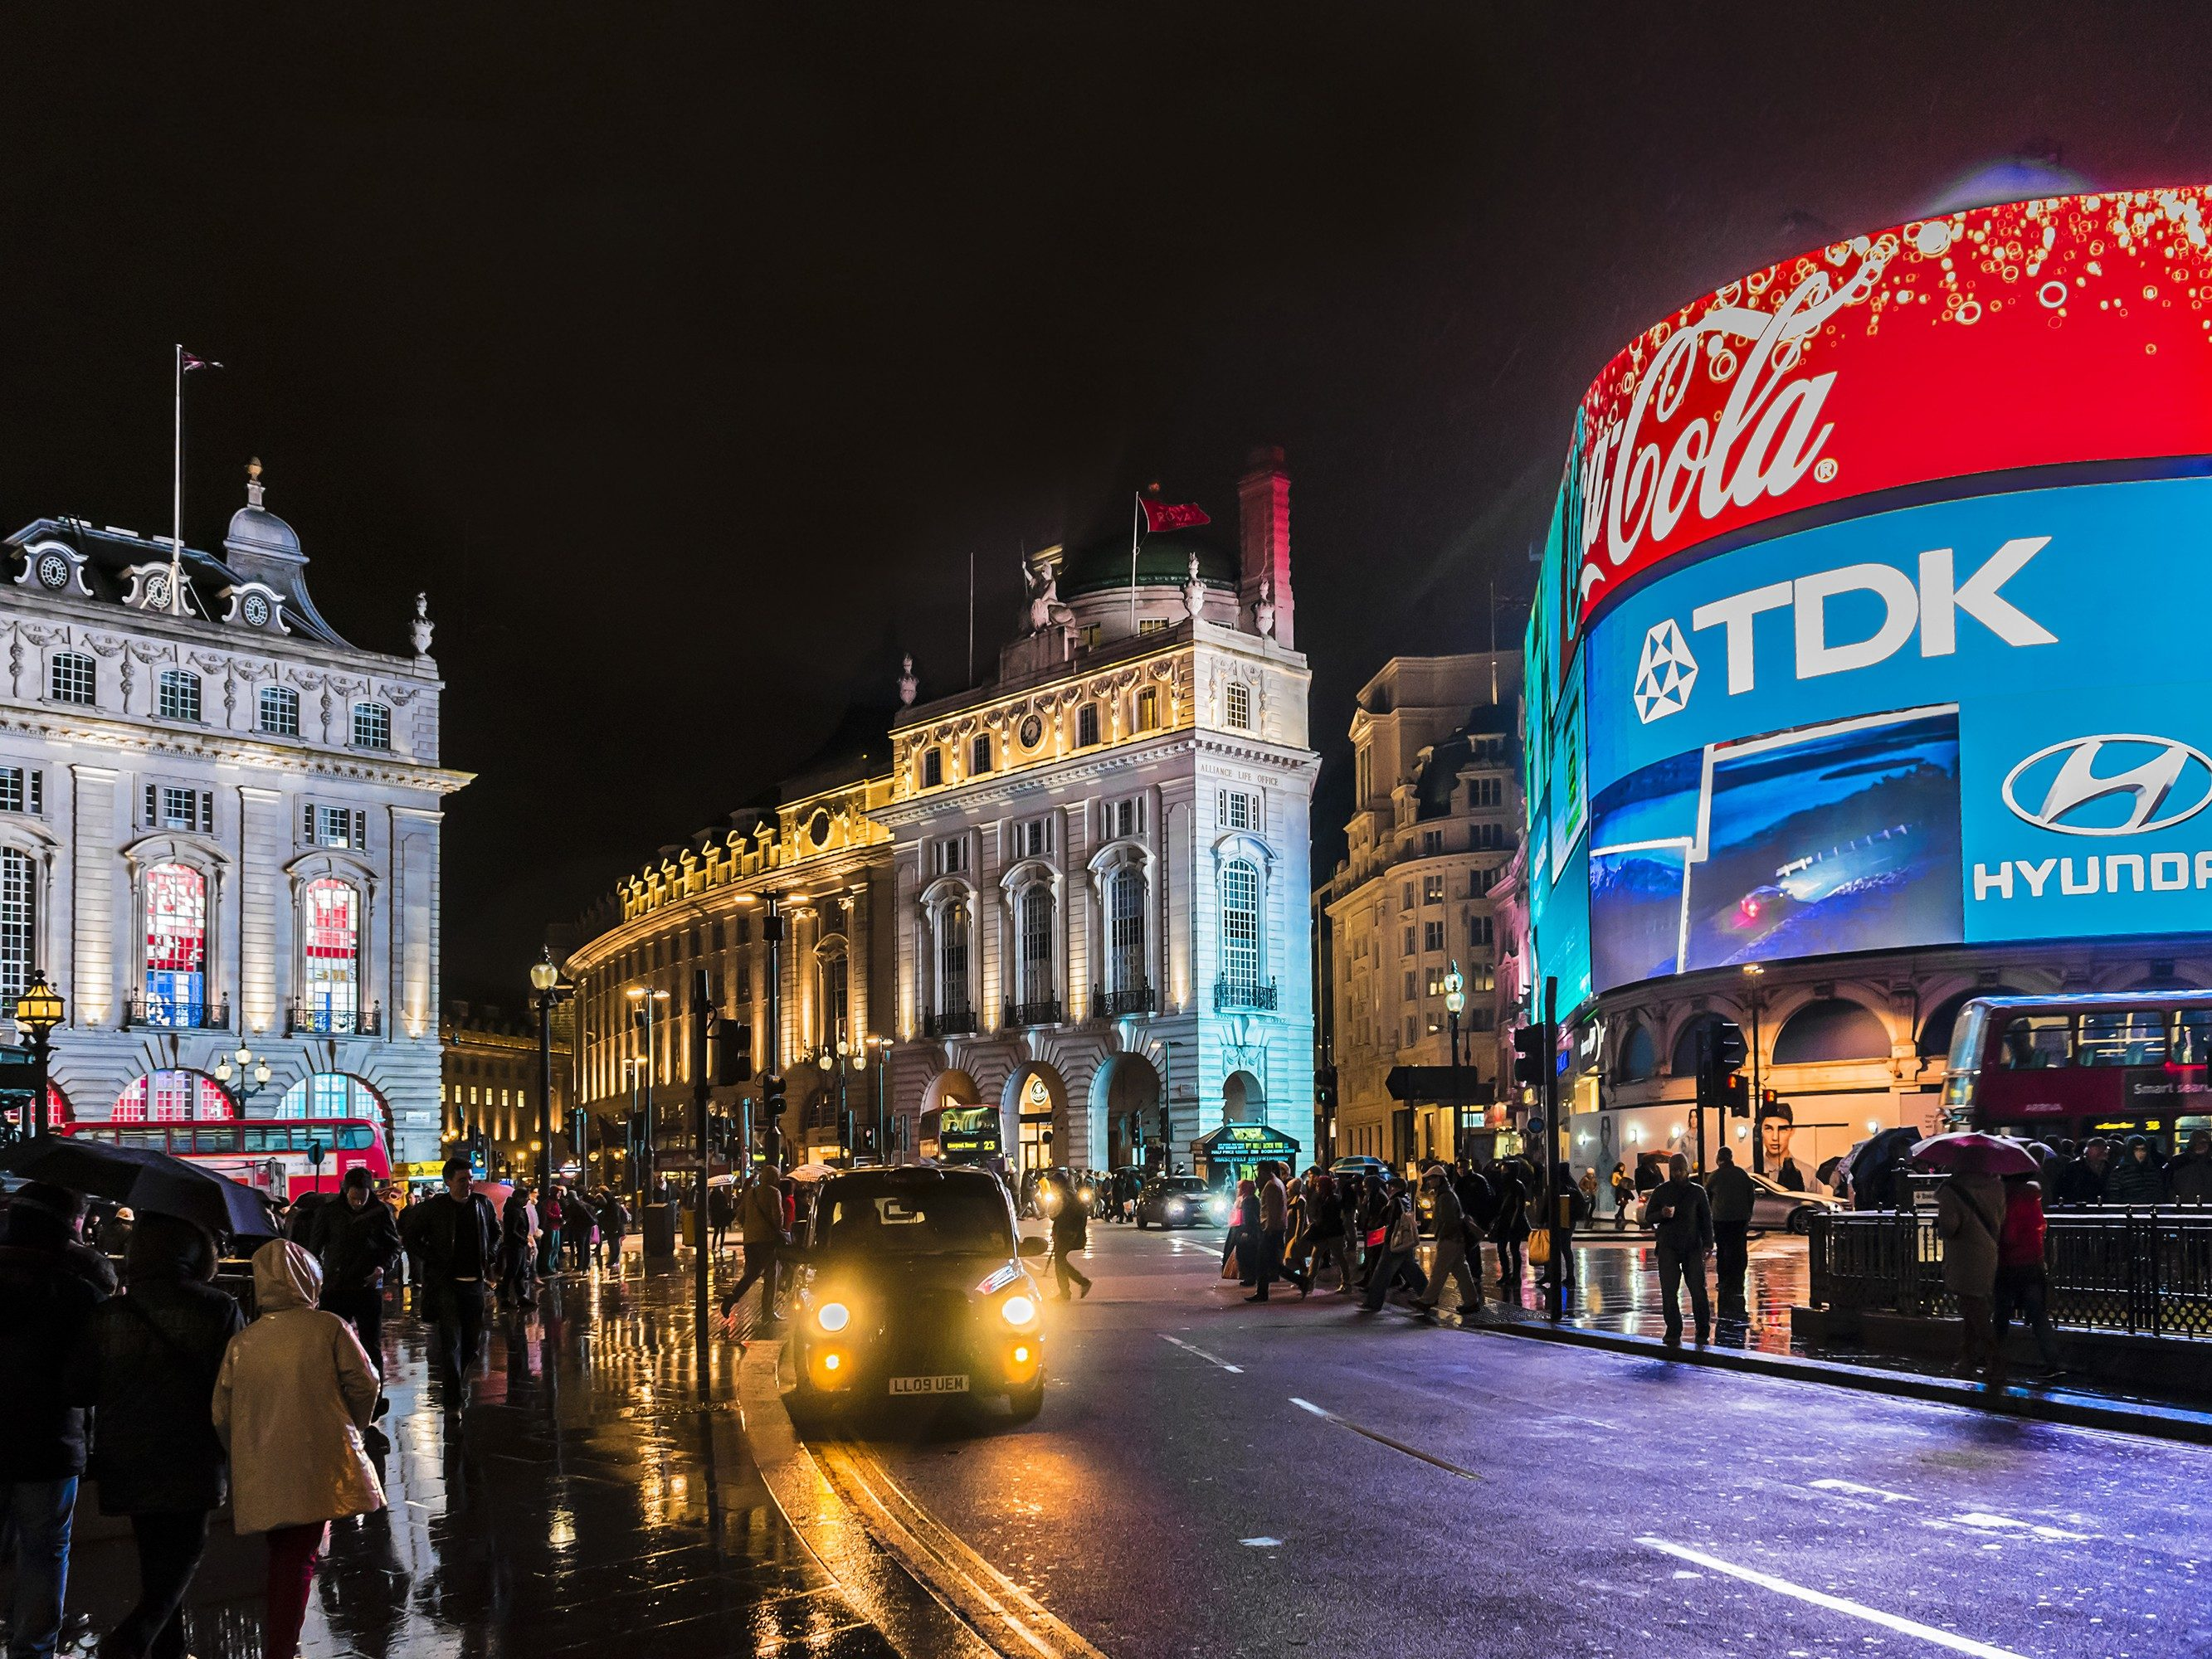 49. Piccadilly Circus